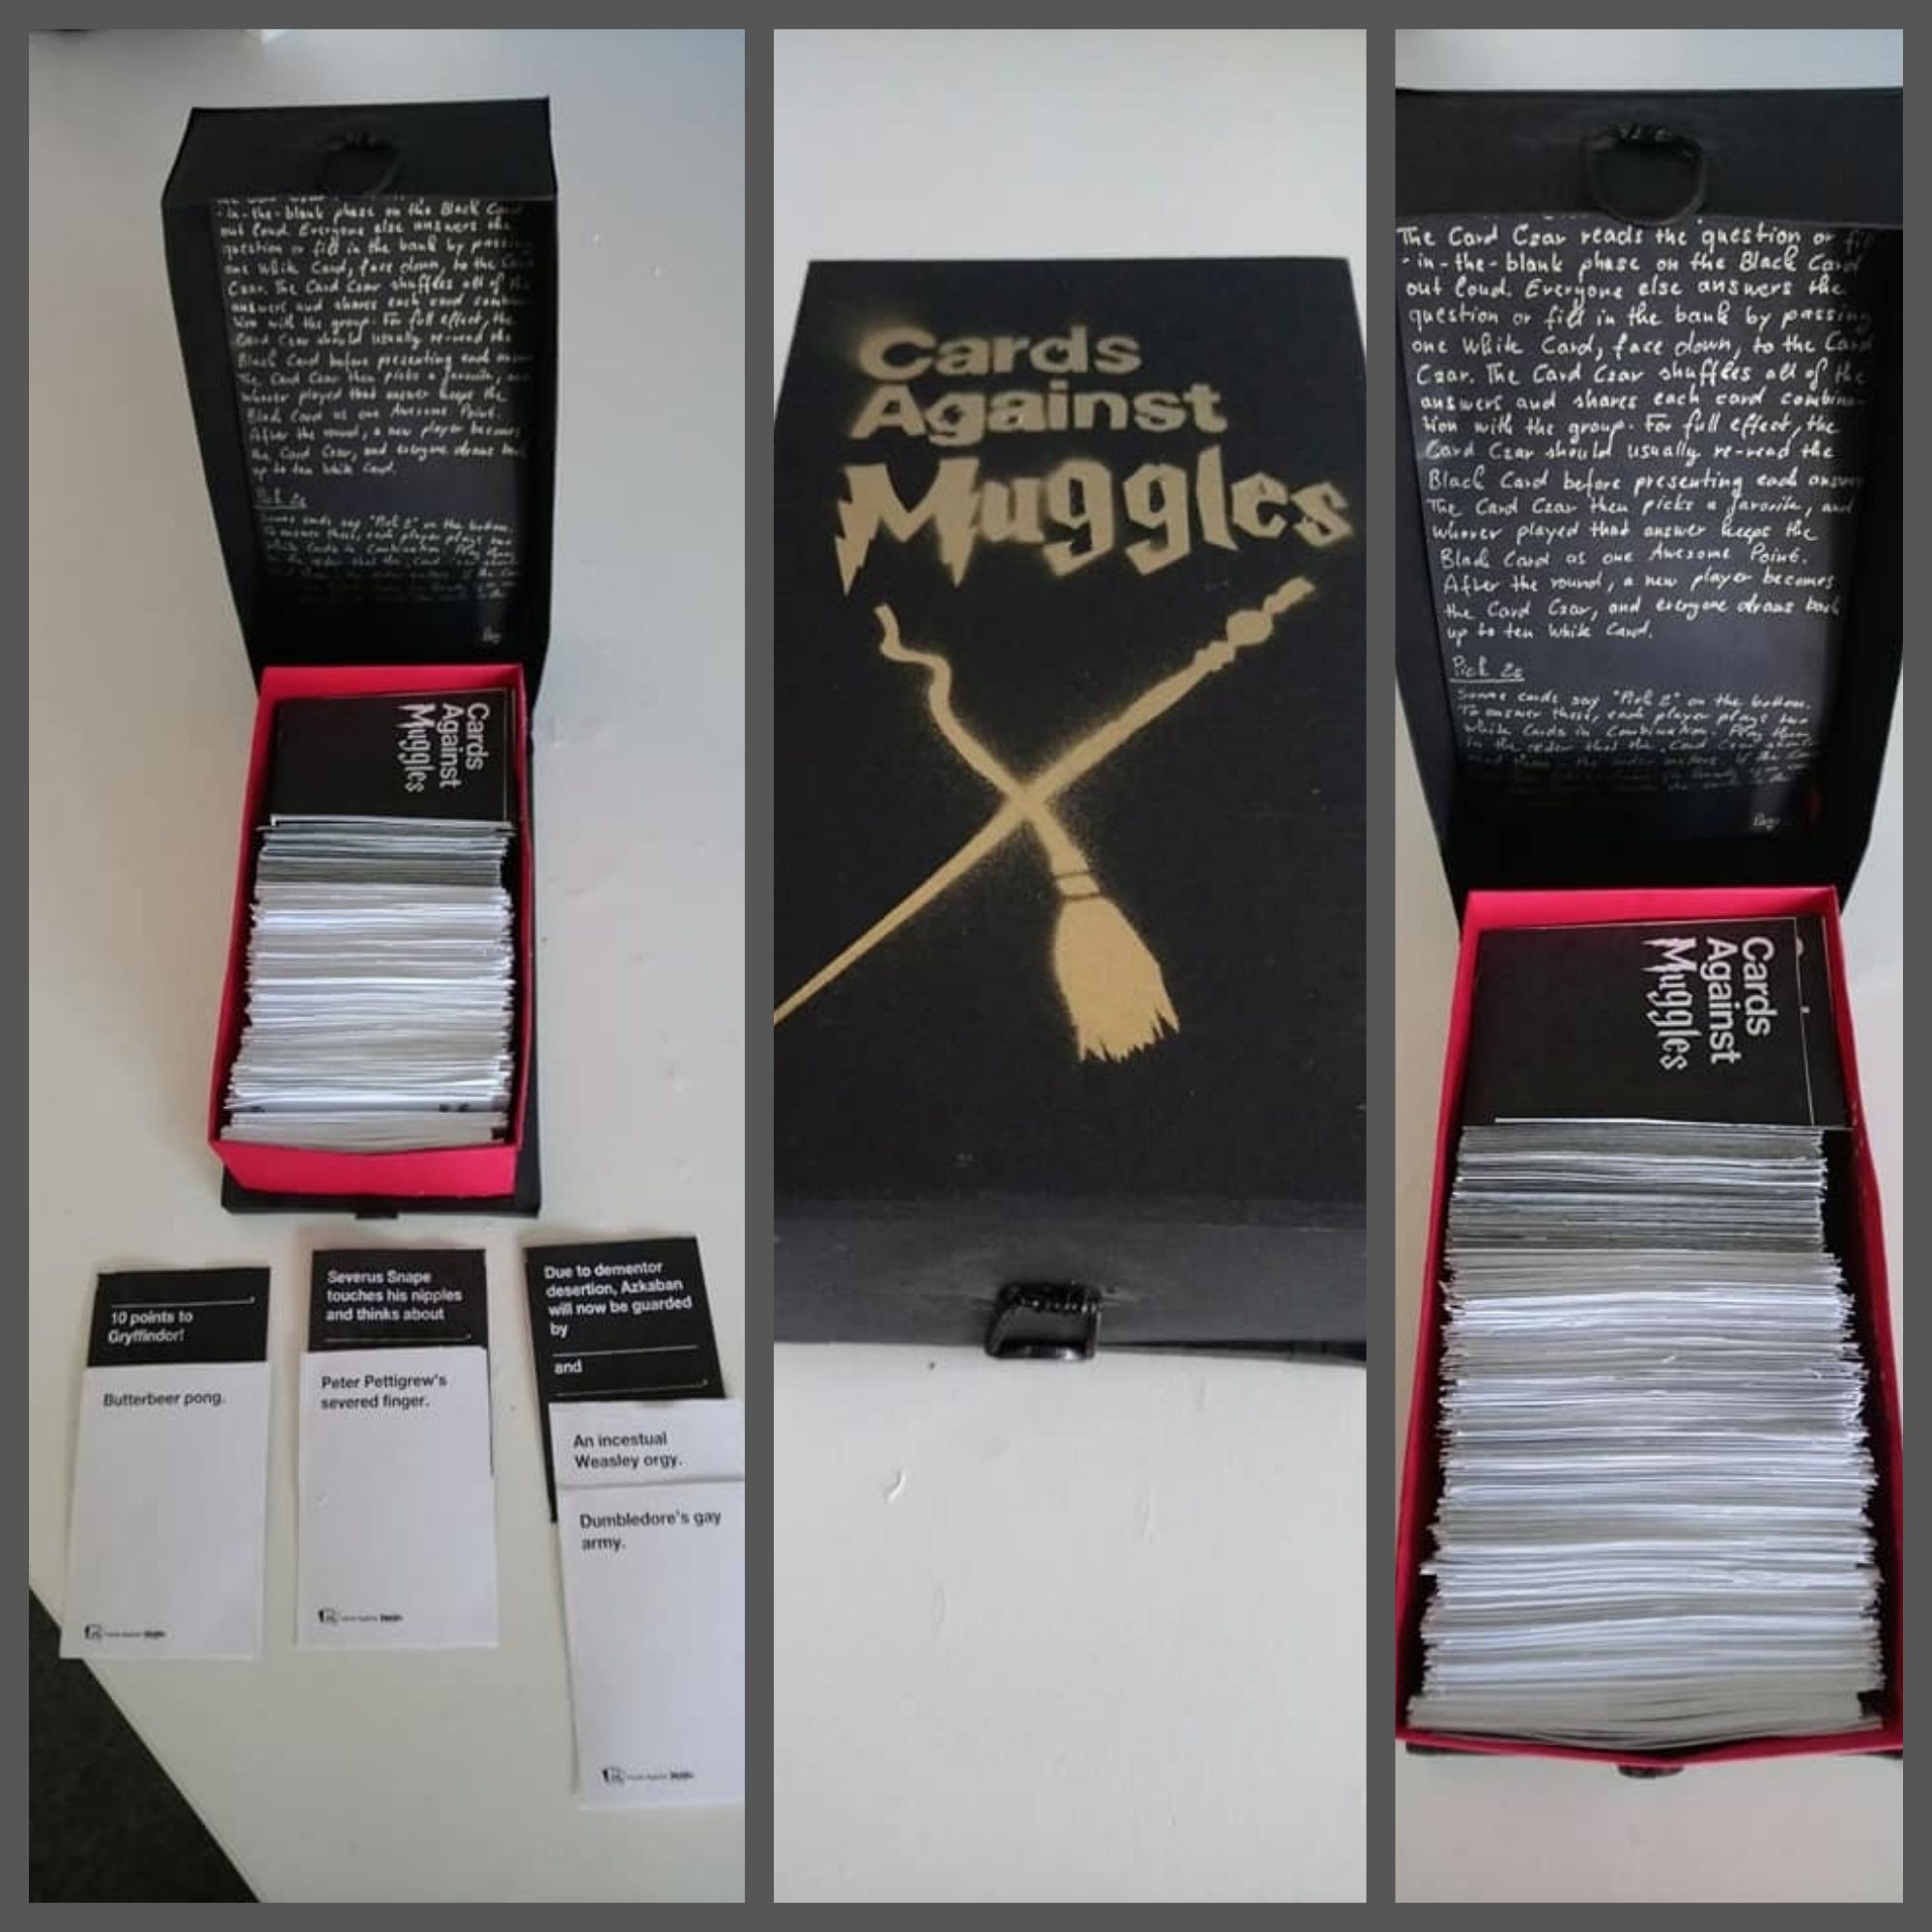 Cards against muggles game handmade based on templates